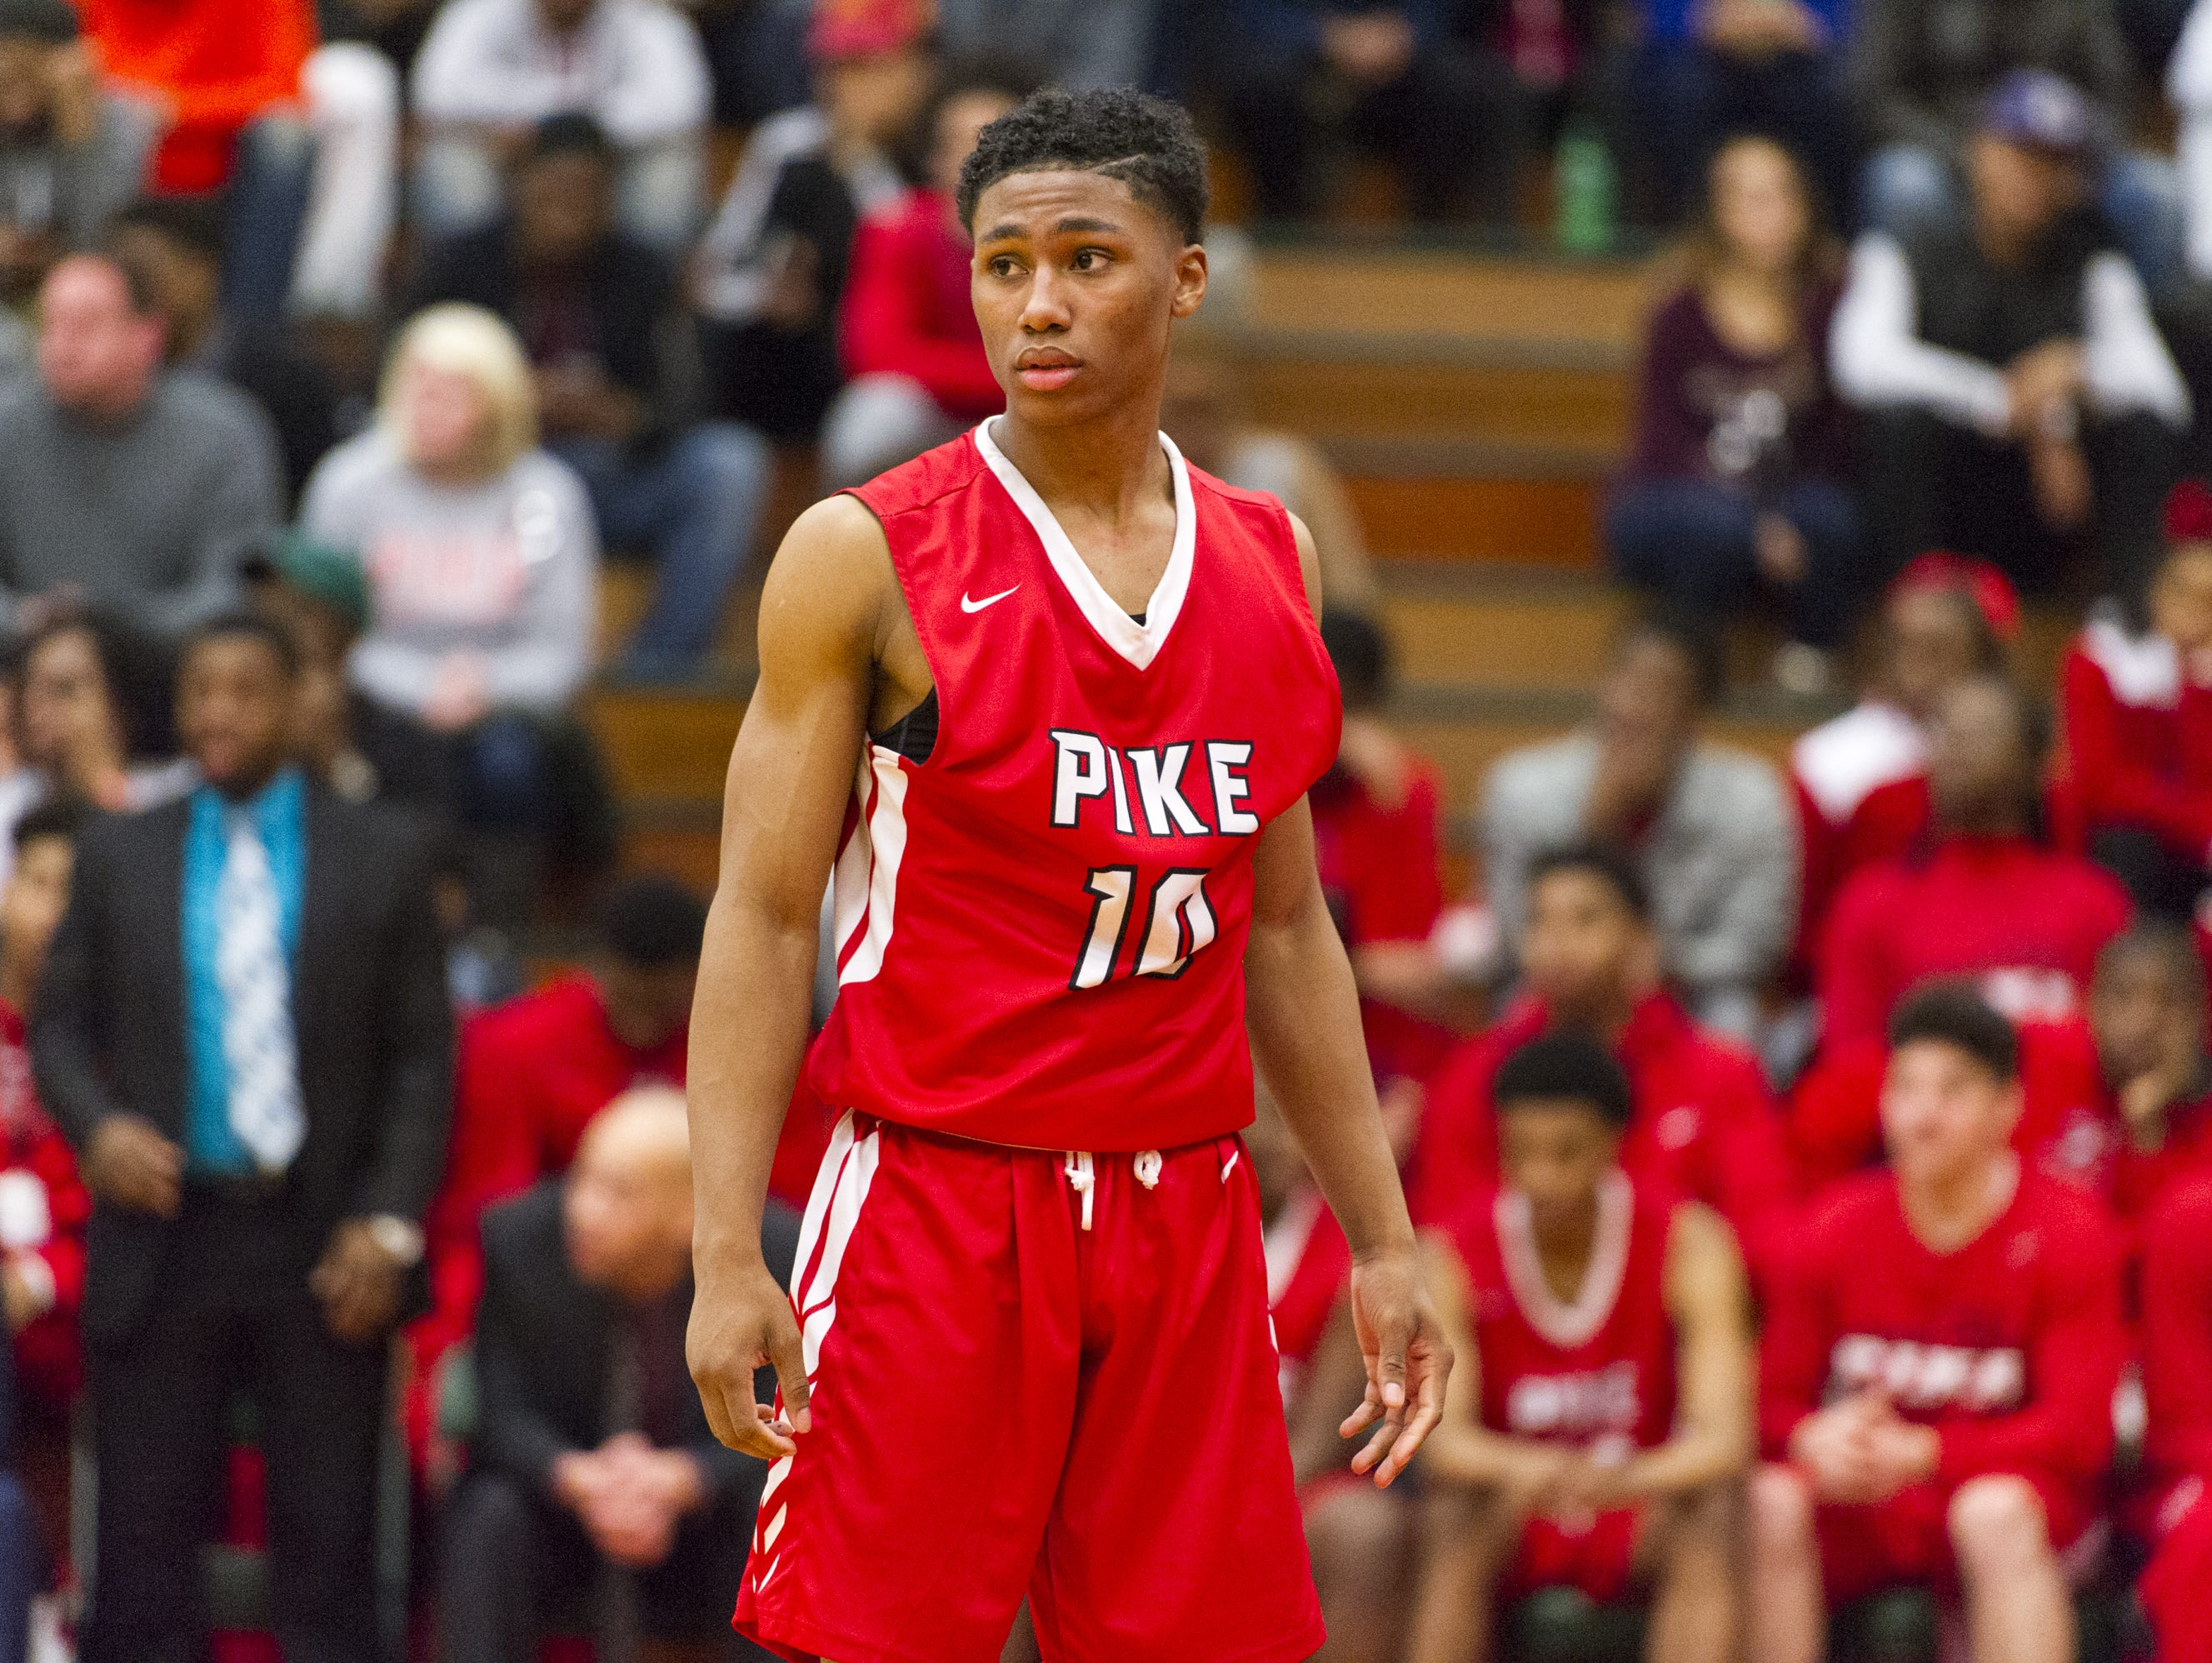 Justin Roberts has traded Pike for Nevada's Findlay Prep.